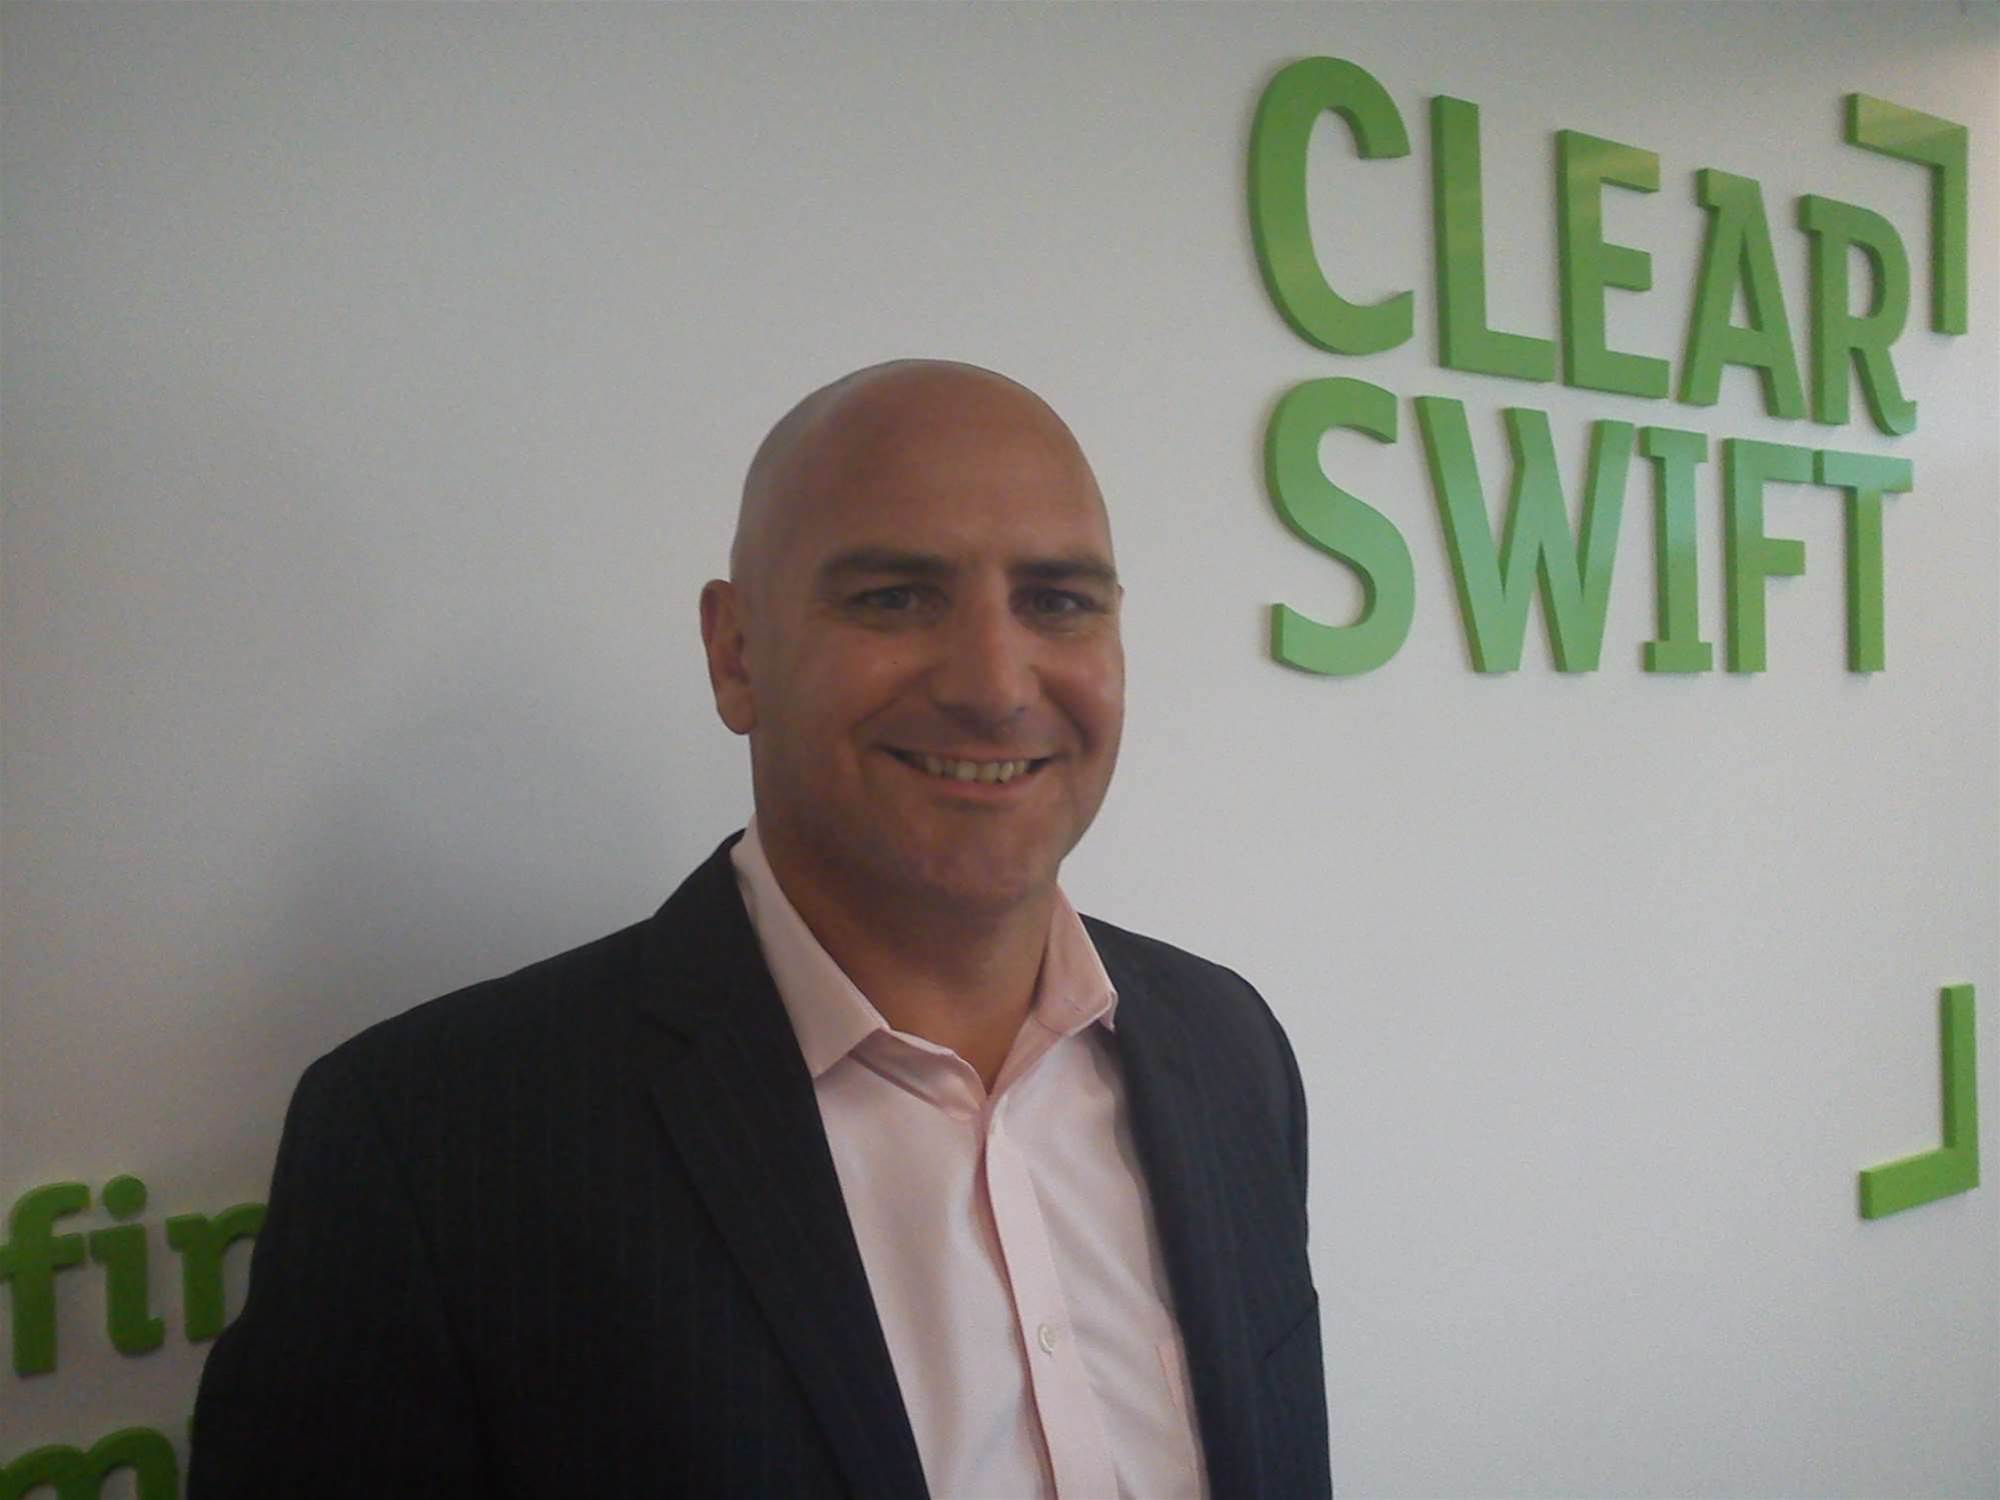 Clearswift has appointed Chris Barton as regional channel manager for Asia Pacific.<p> </p>Based at Clearswift's regional headquarters in Sydney, Barton is responsible for strategic channel planning and strategy.<p> </p>Formerly regional sales manager (NZ) at Websense, Barton has more than 10 years experience in the IT security industry.